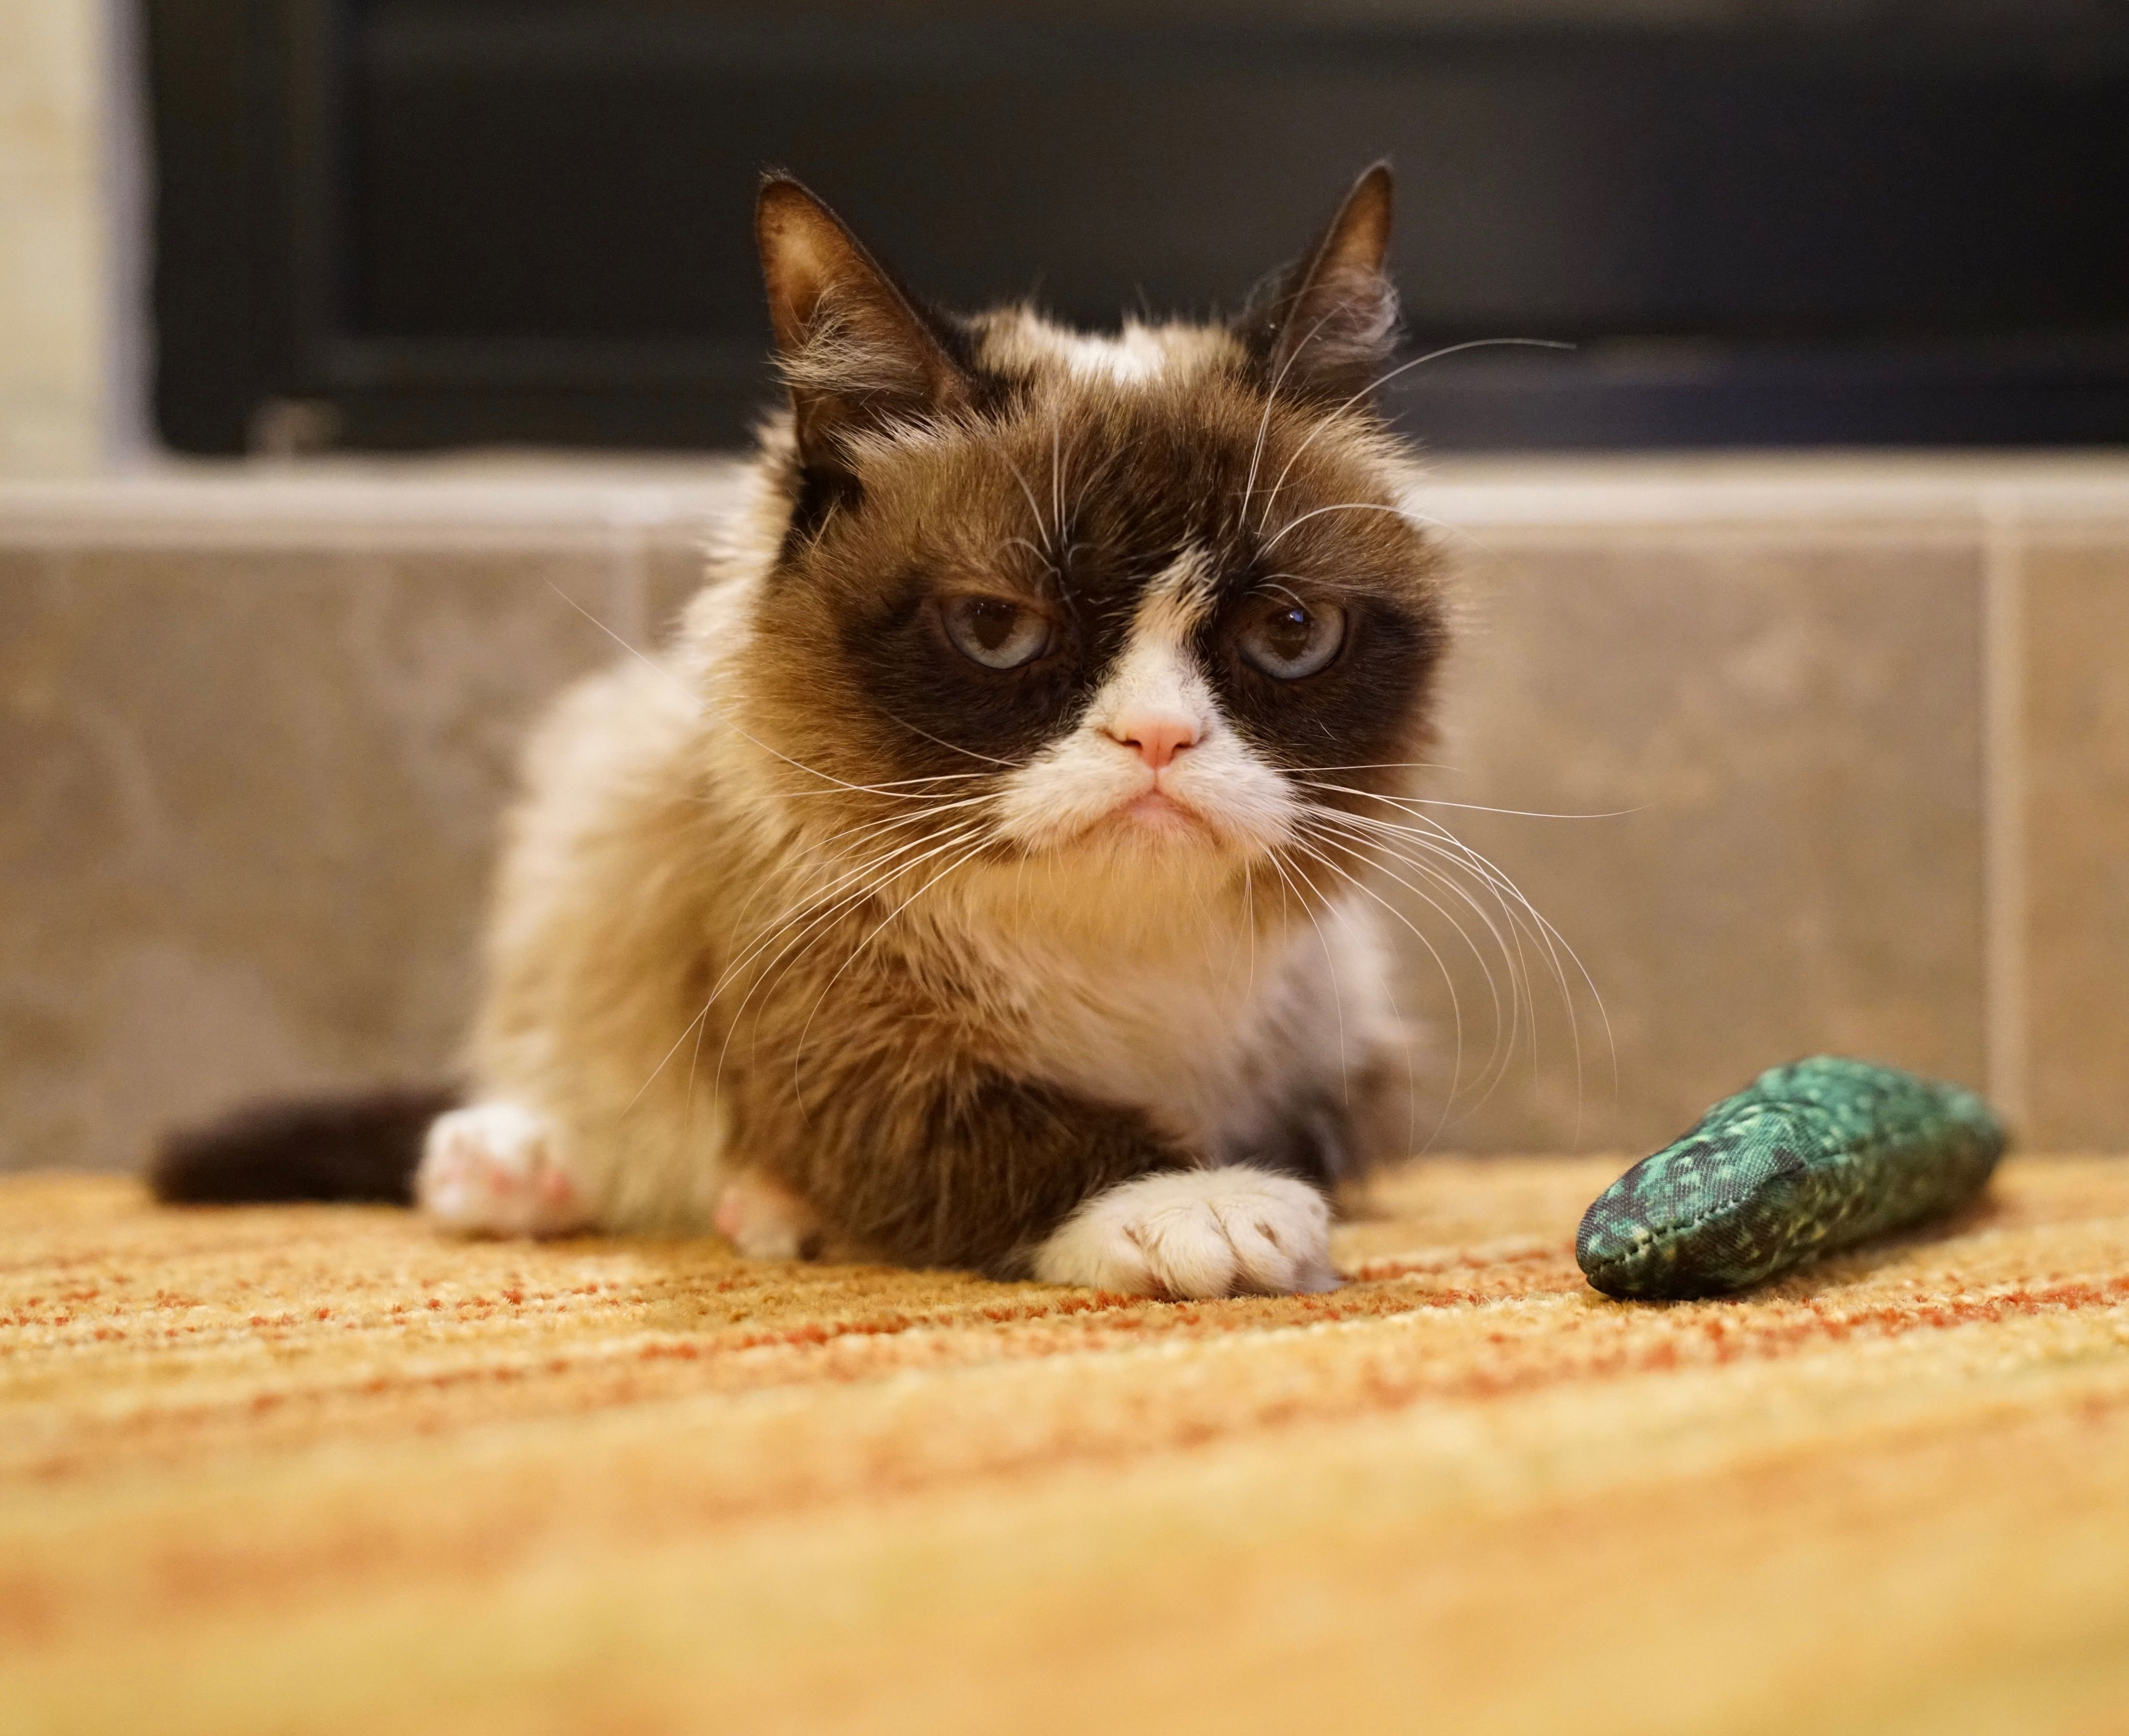 Grumpy Cat toys are available at PetSmart Meet the Grumpy Cat